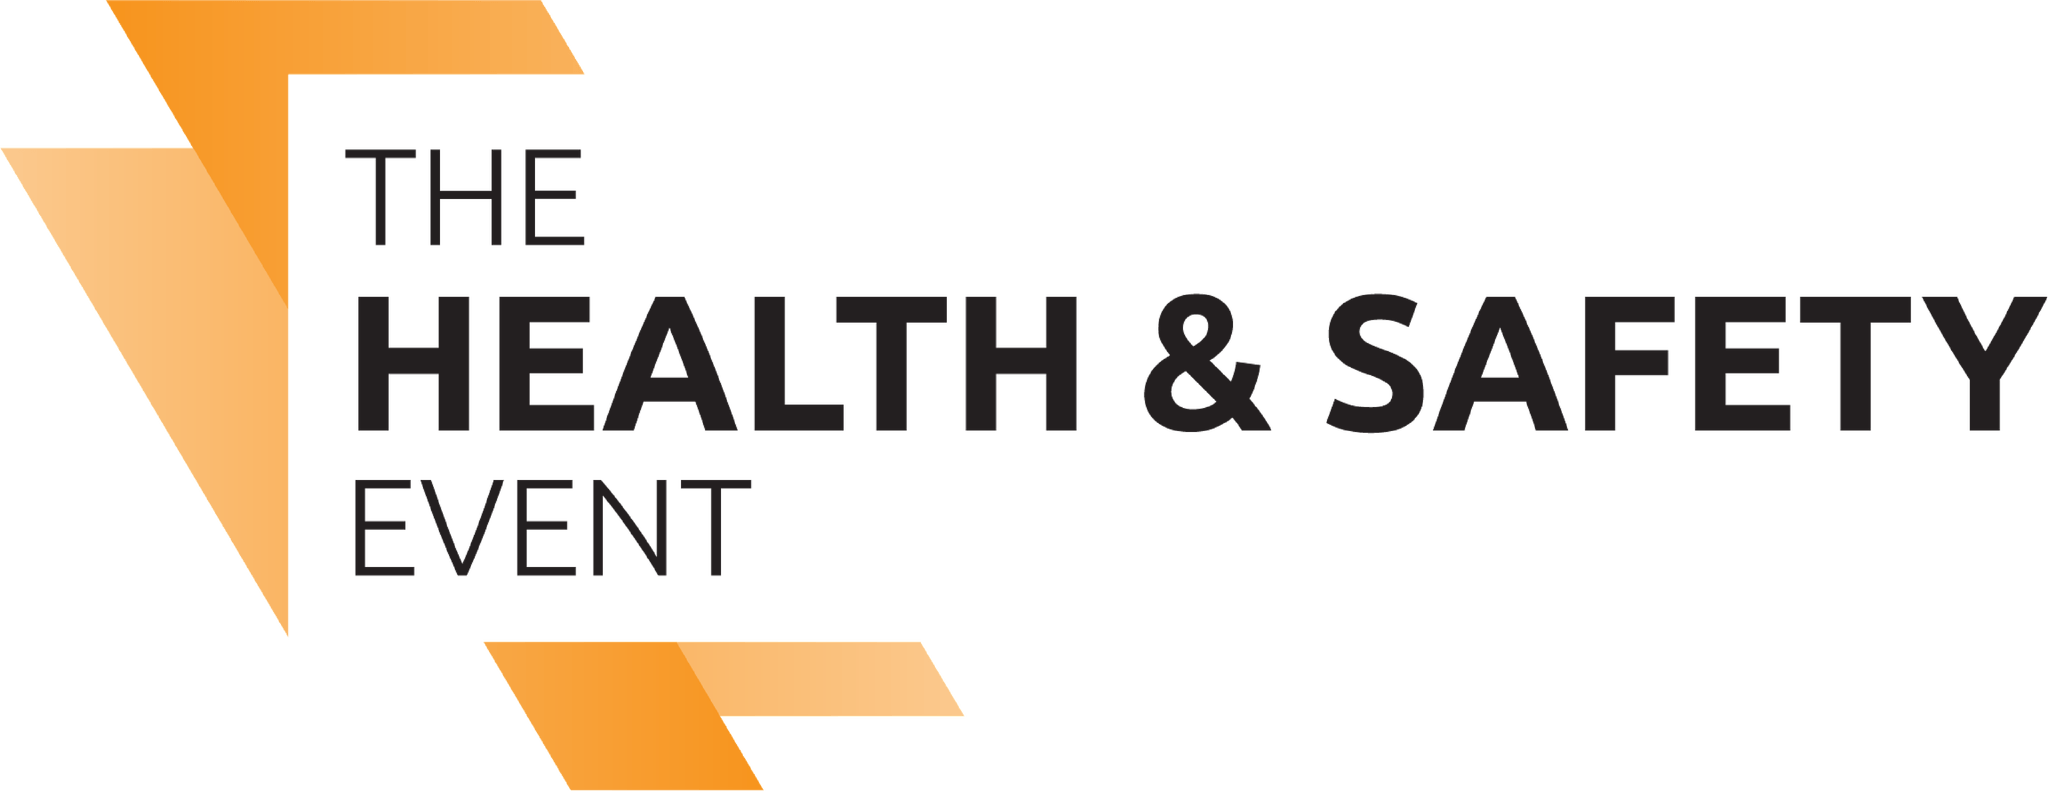 The health and safety logo